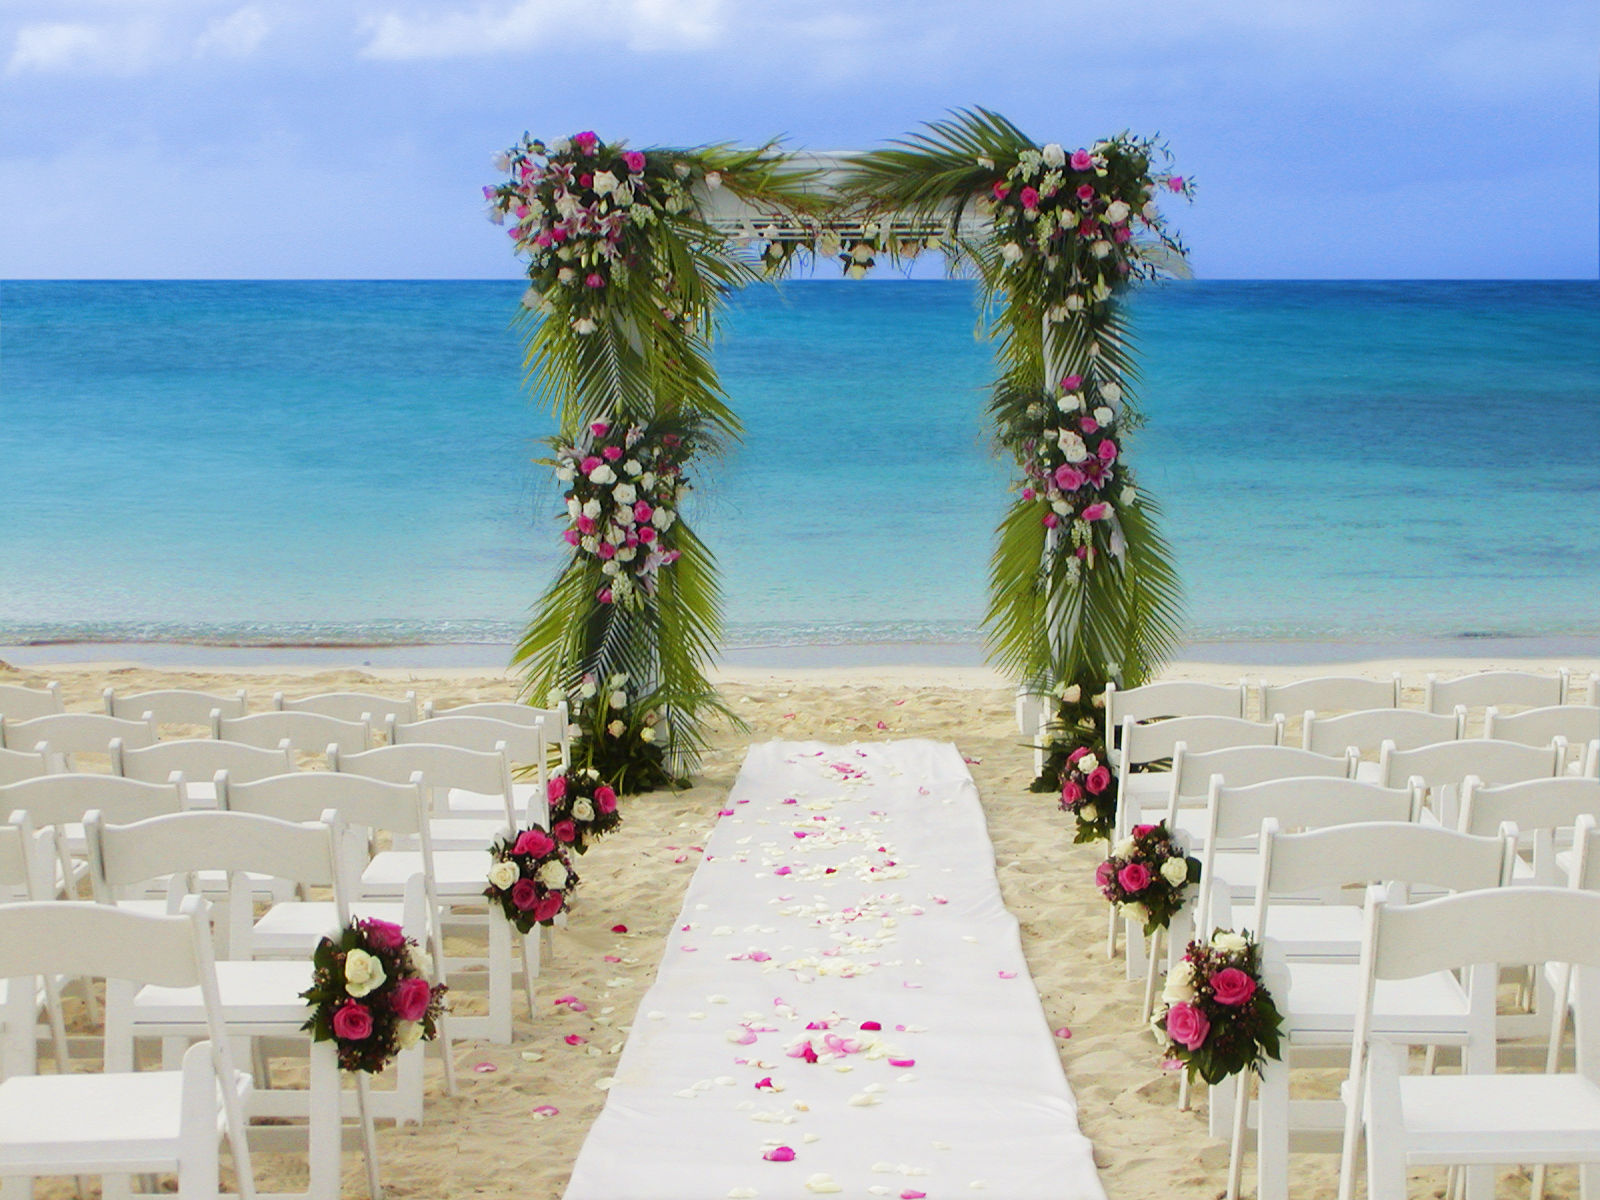 Escape the cold and head to paradise atlantis paradise for Destination wedding location ideas